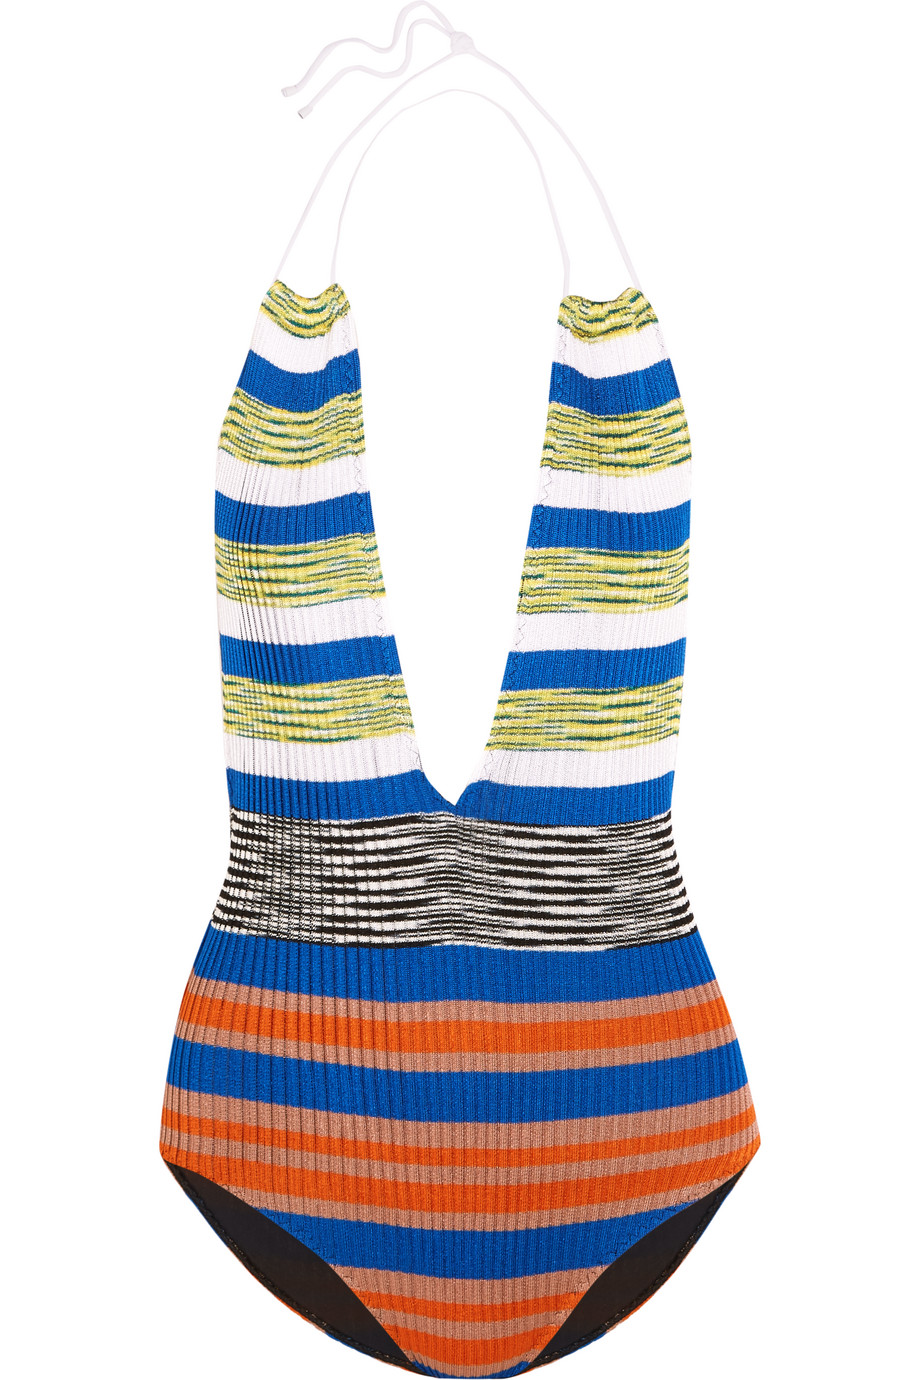 Missoni Mare Cutout Striped Crochet-Knit Halterneck Swimsuit, Blue/Orange, Women's, Size: 44